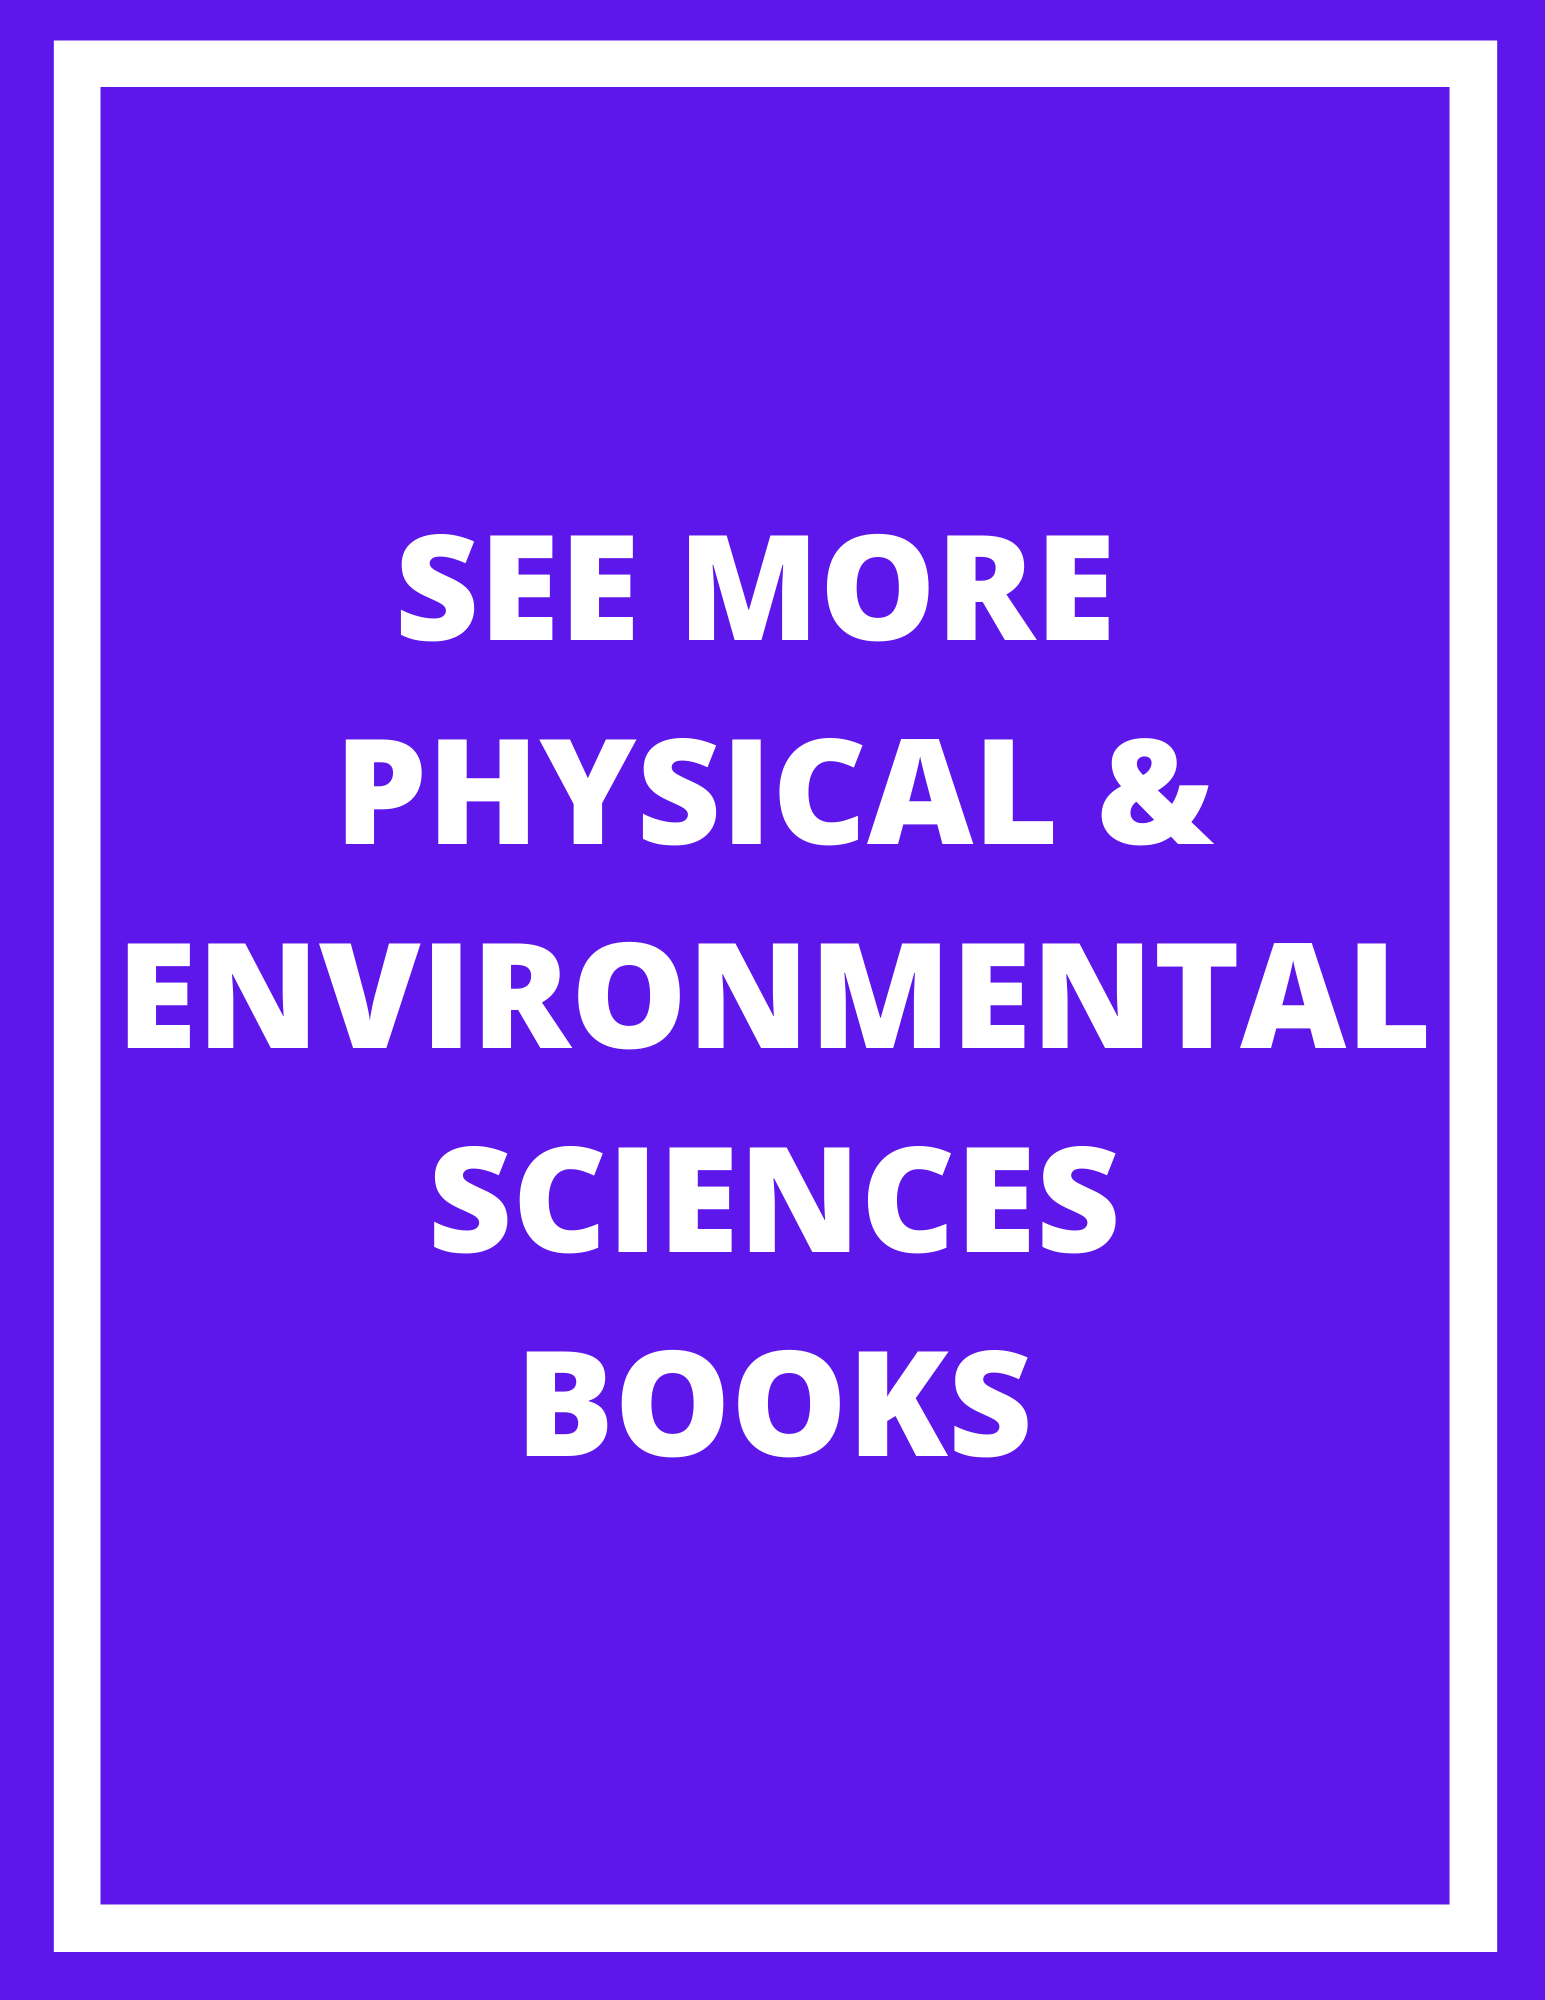 Link to see more physical and environmental science books